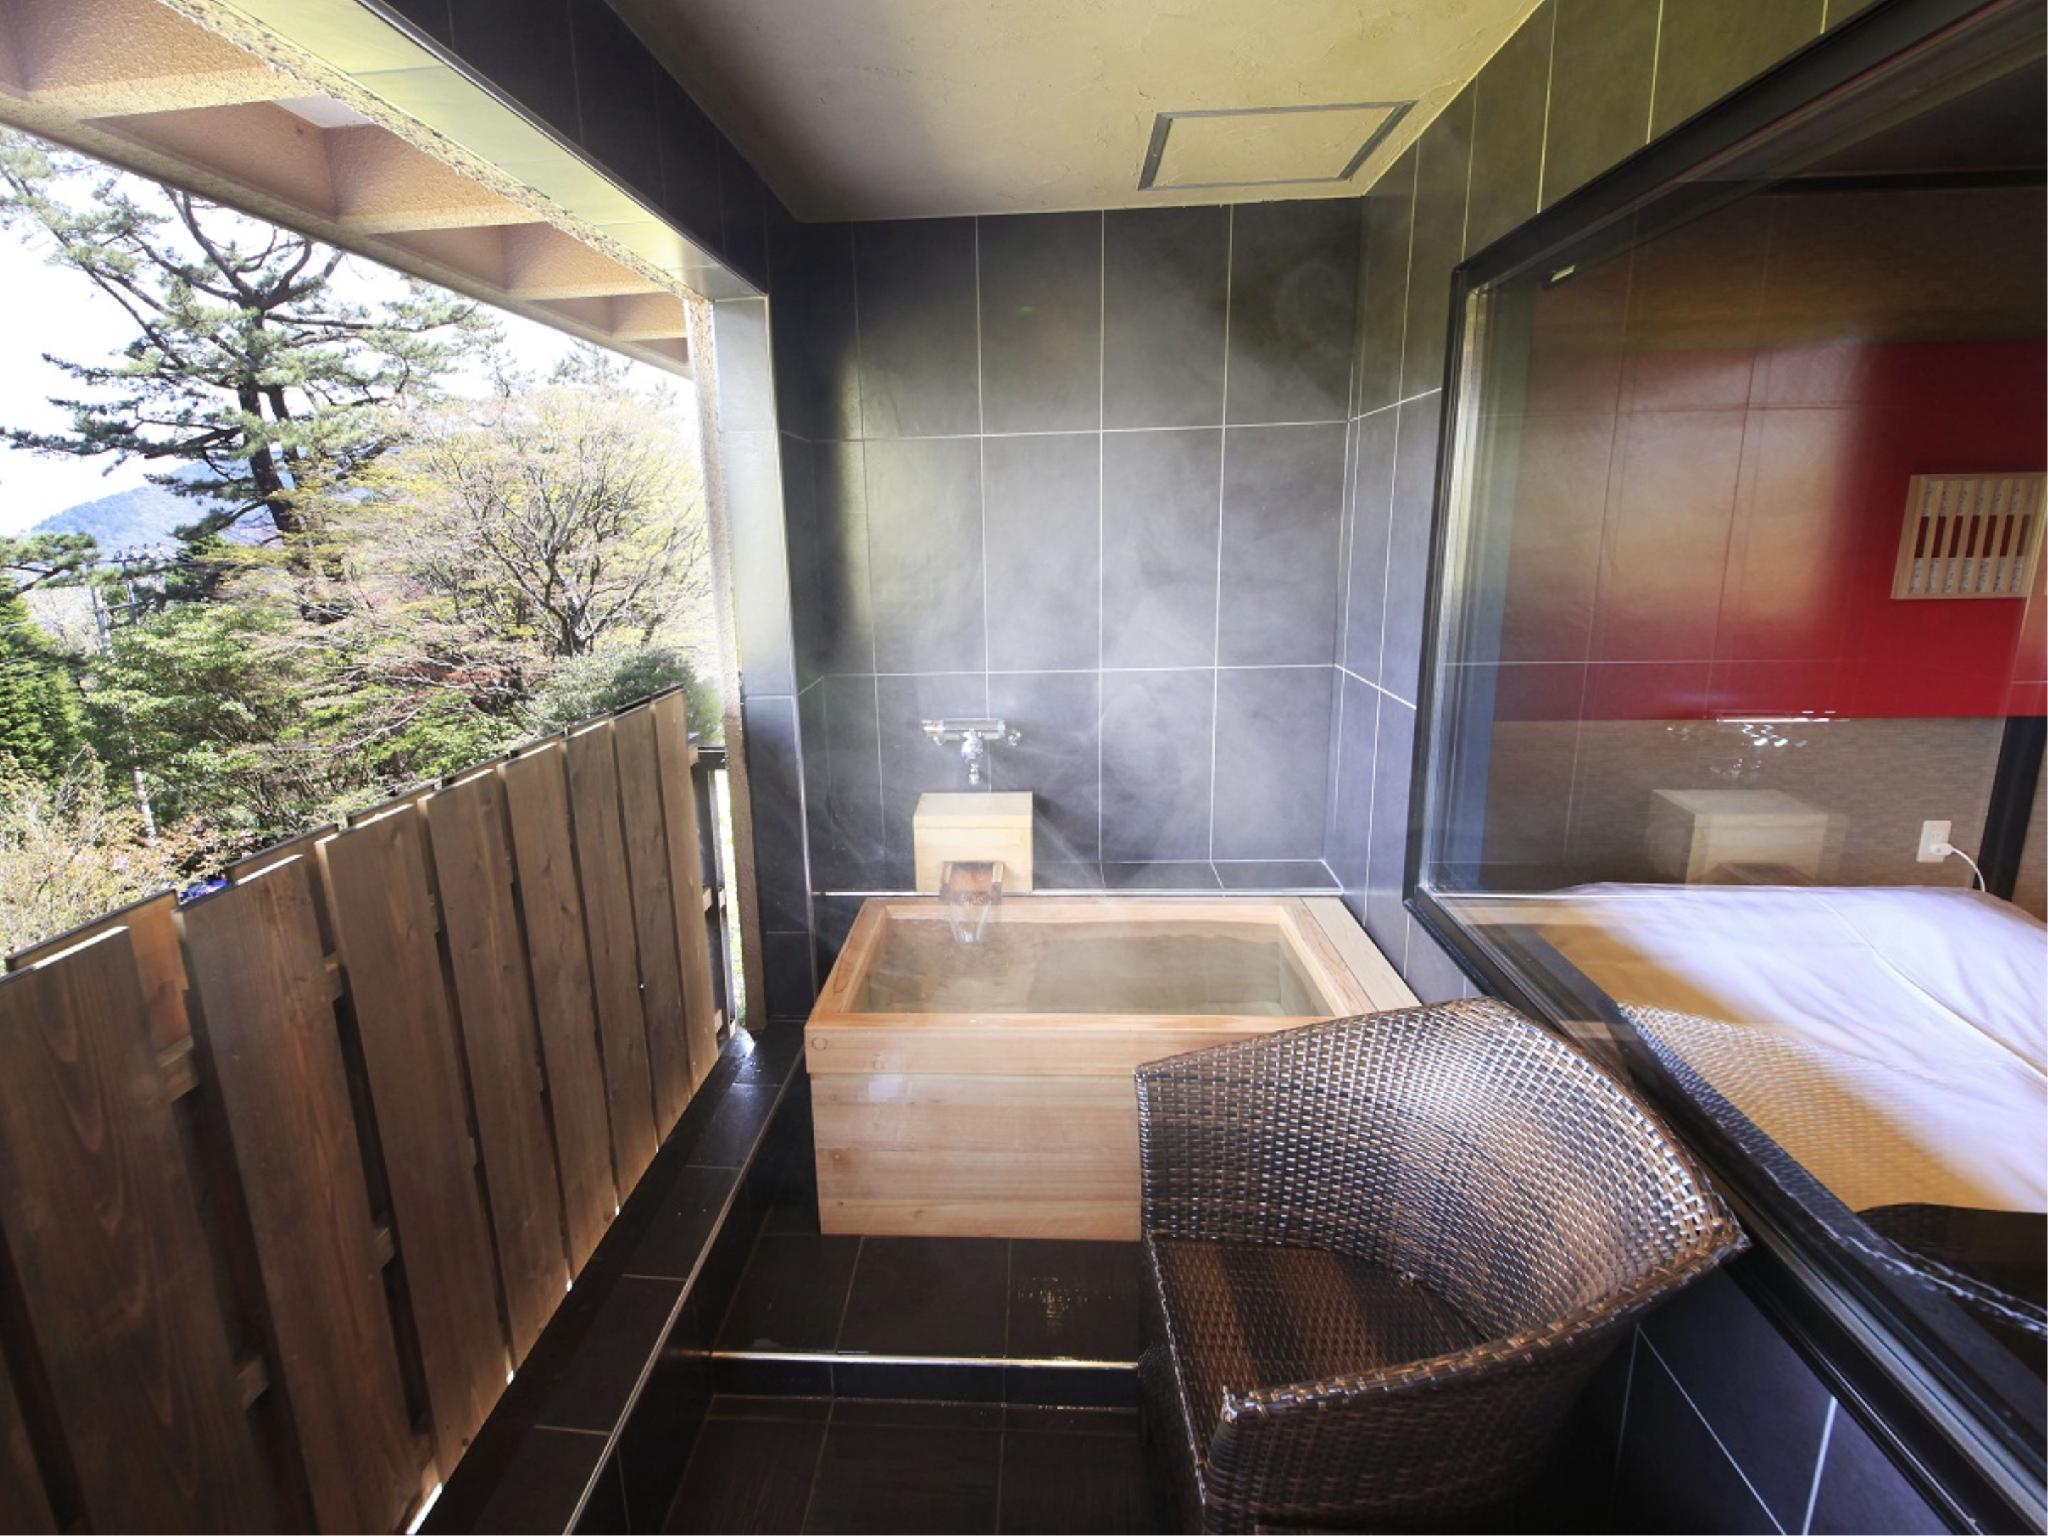 일본식 모던 다다미 침대 객실(노천탕) (Modern Japanese/Western-style Room with Open-air Bath)